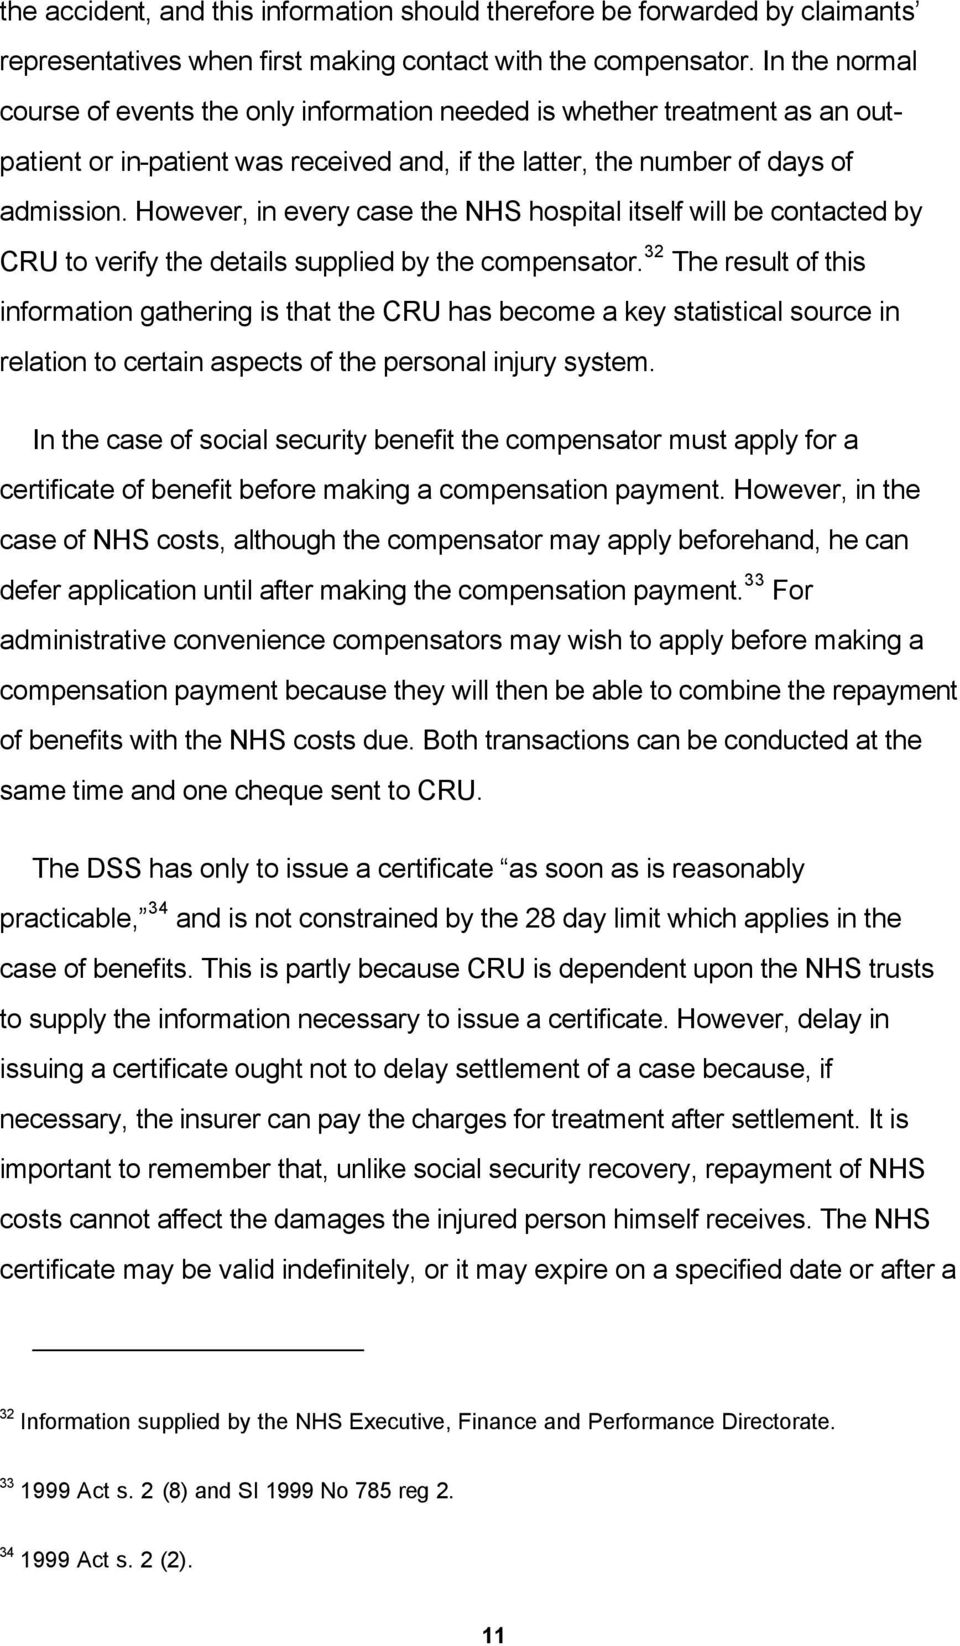 However, in every case the NHS hospital itself will be contacted by CRU to verify the details supplied by the compensator.